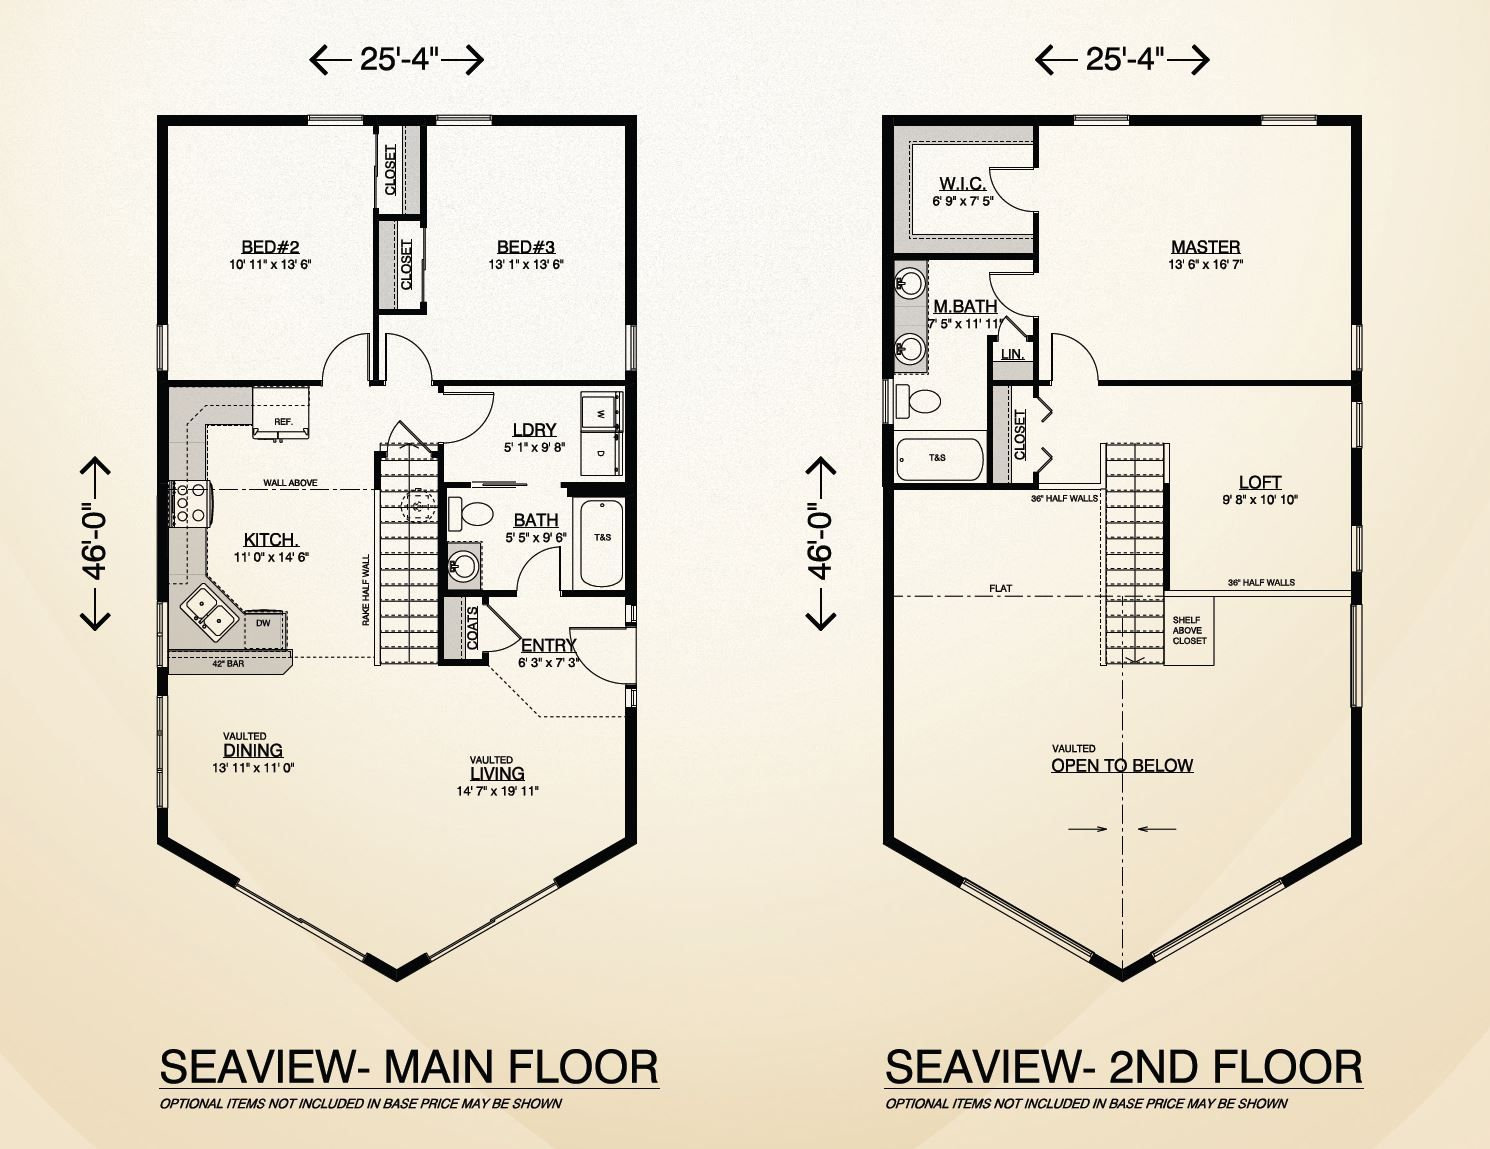 Seaview Home Plan Multi Level Two Story Home Built On Your Lot Fully Customizable Floor Plan With Quality Home Feat House Plans Floor Plans Two Story Homes